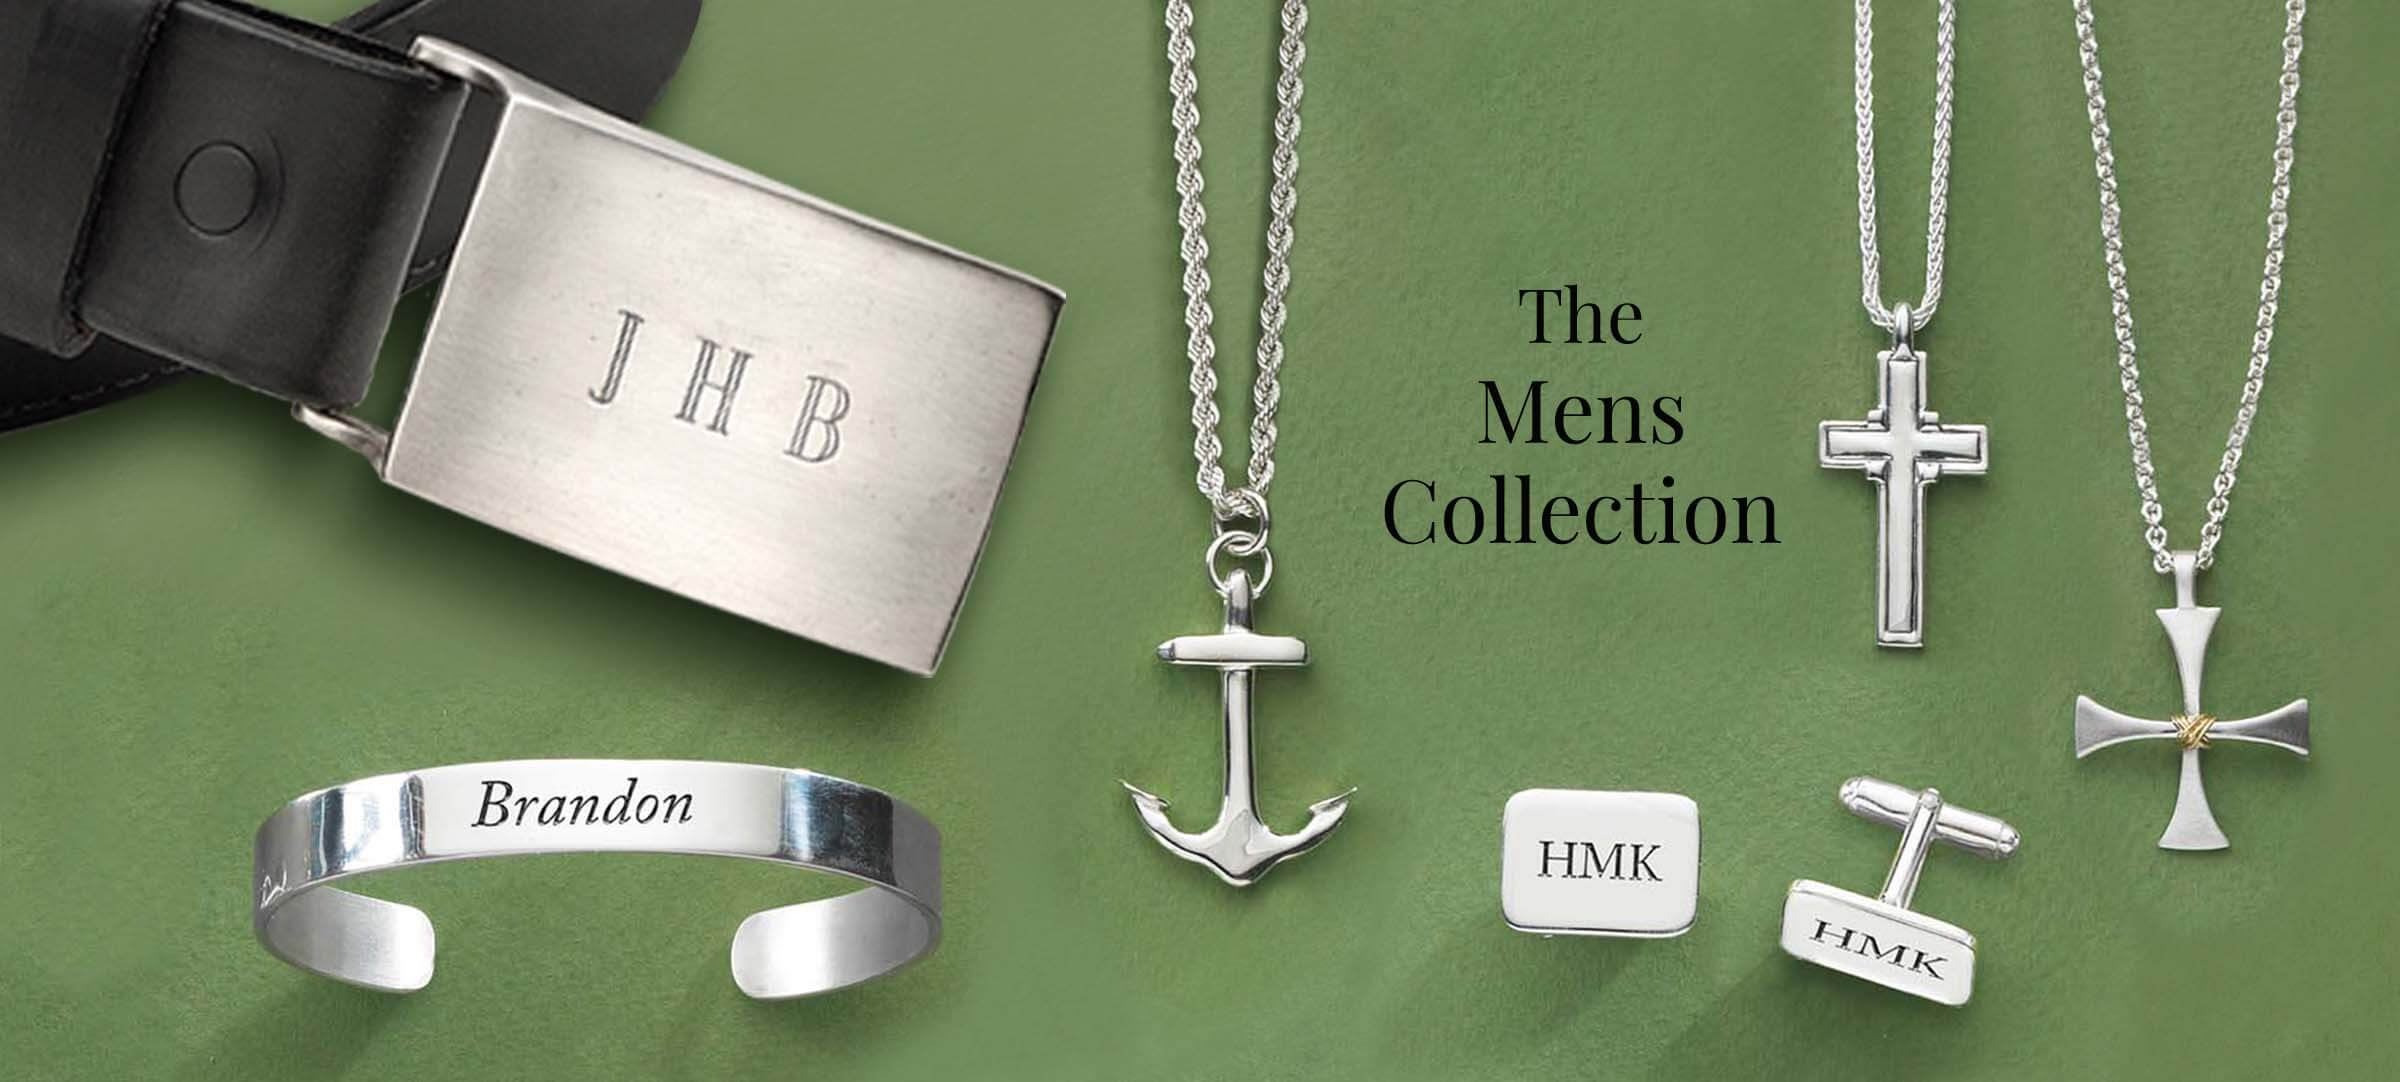 mens-collection-reduced.jpg